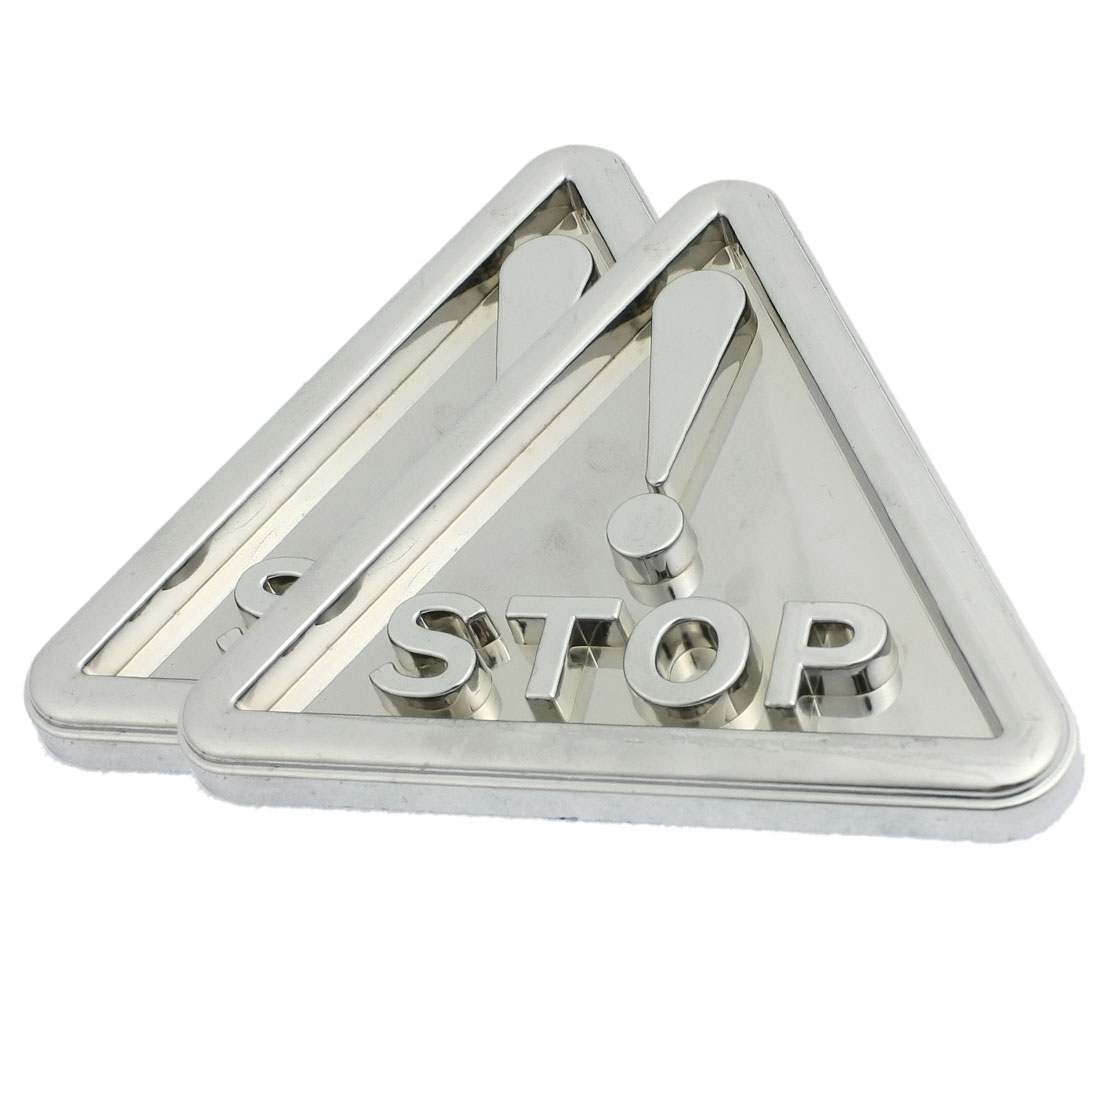 2 Pcs Silver Tone Traffic Safety Warning Sign Triangle Sticker